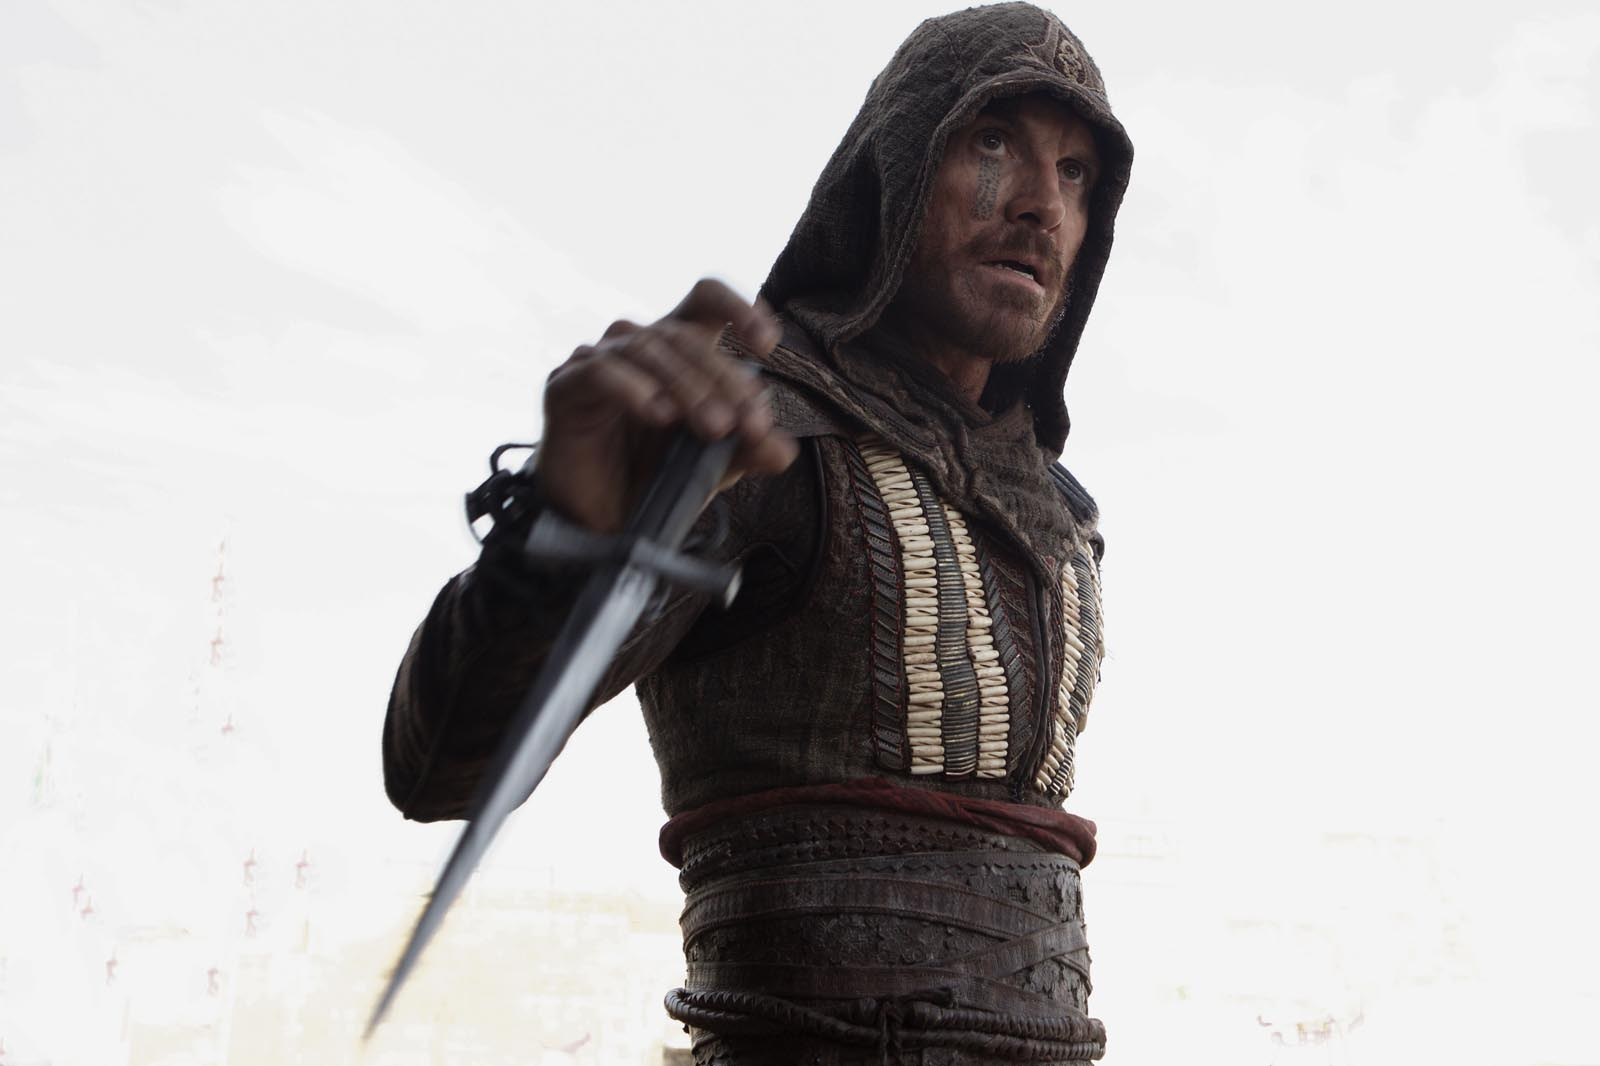 New 'Assassin's Creed' Images Released